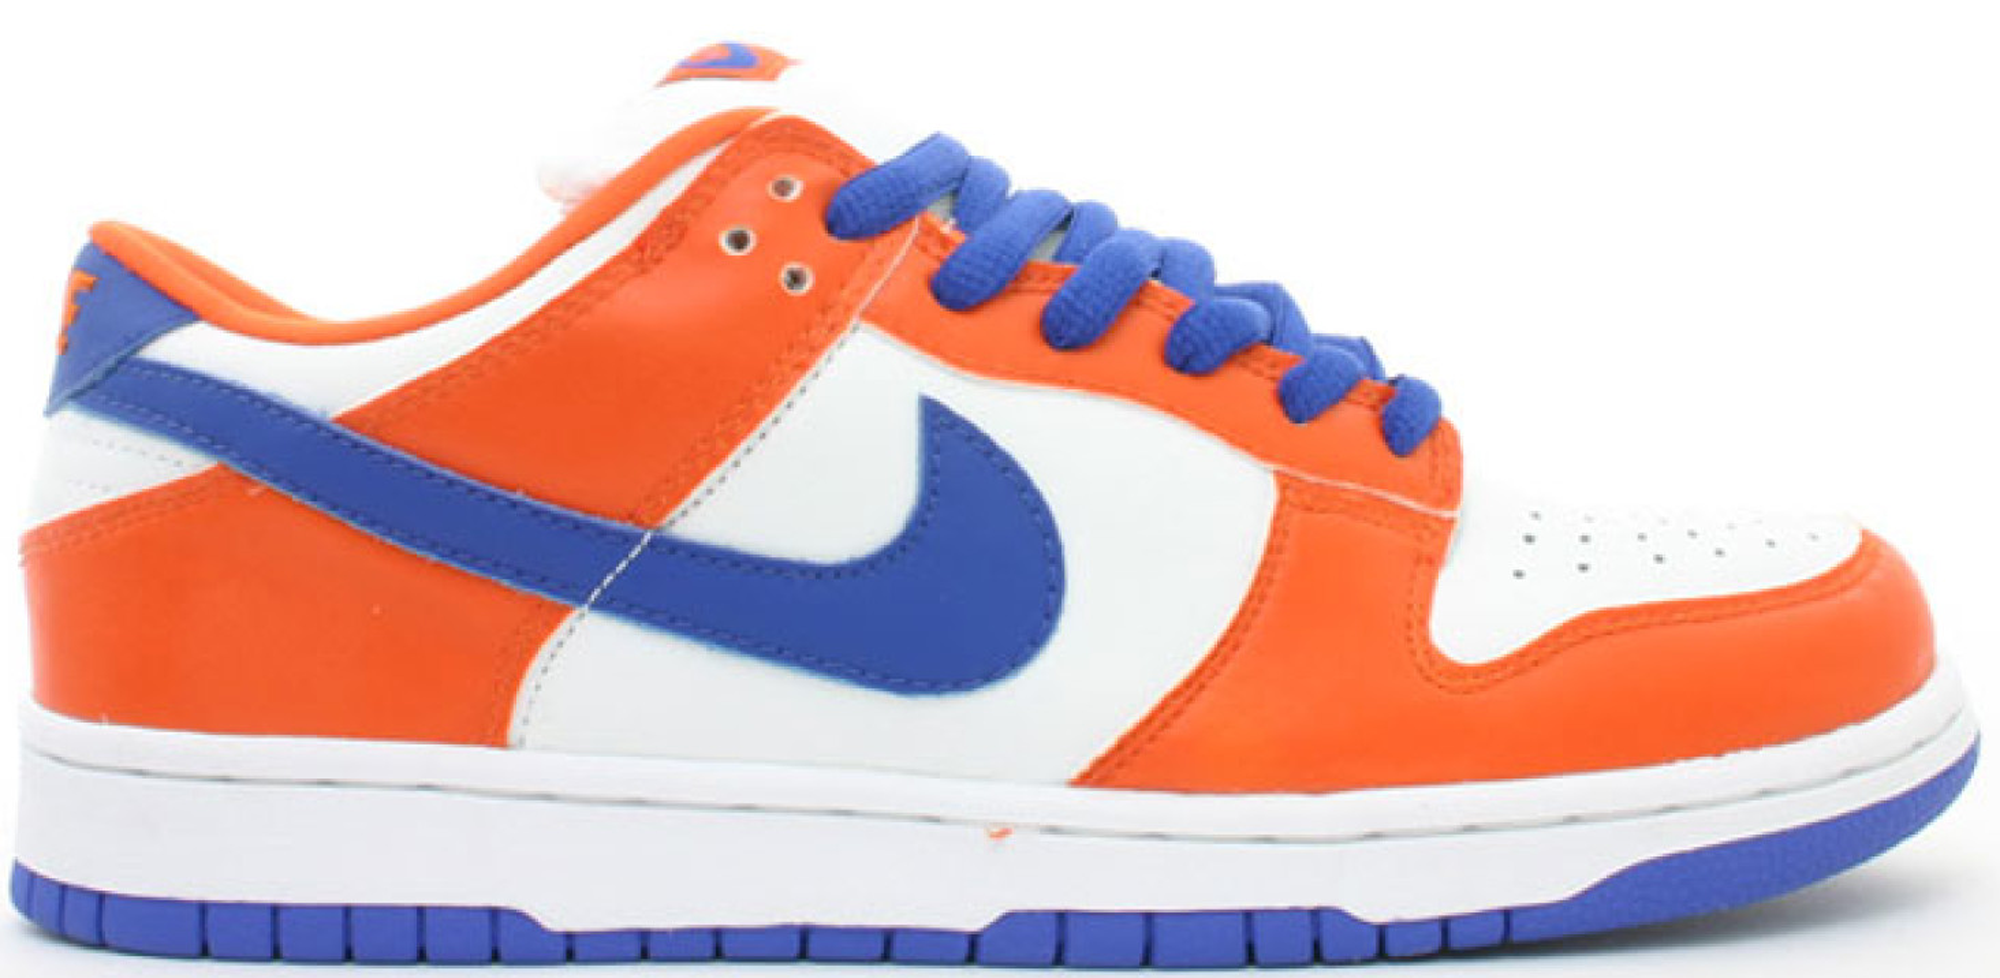 Nike SB Dunk Low Danny Supa